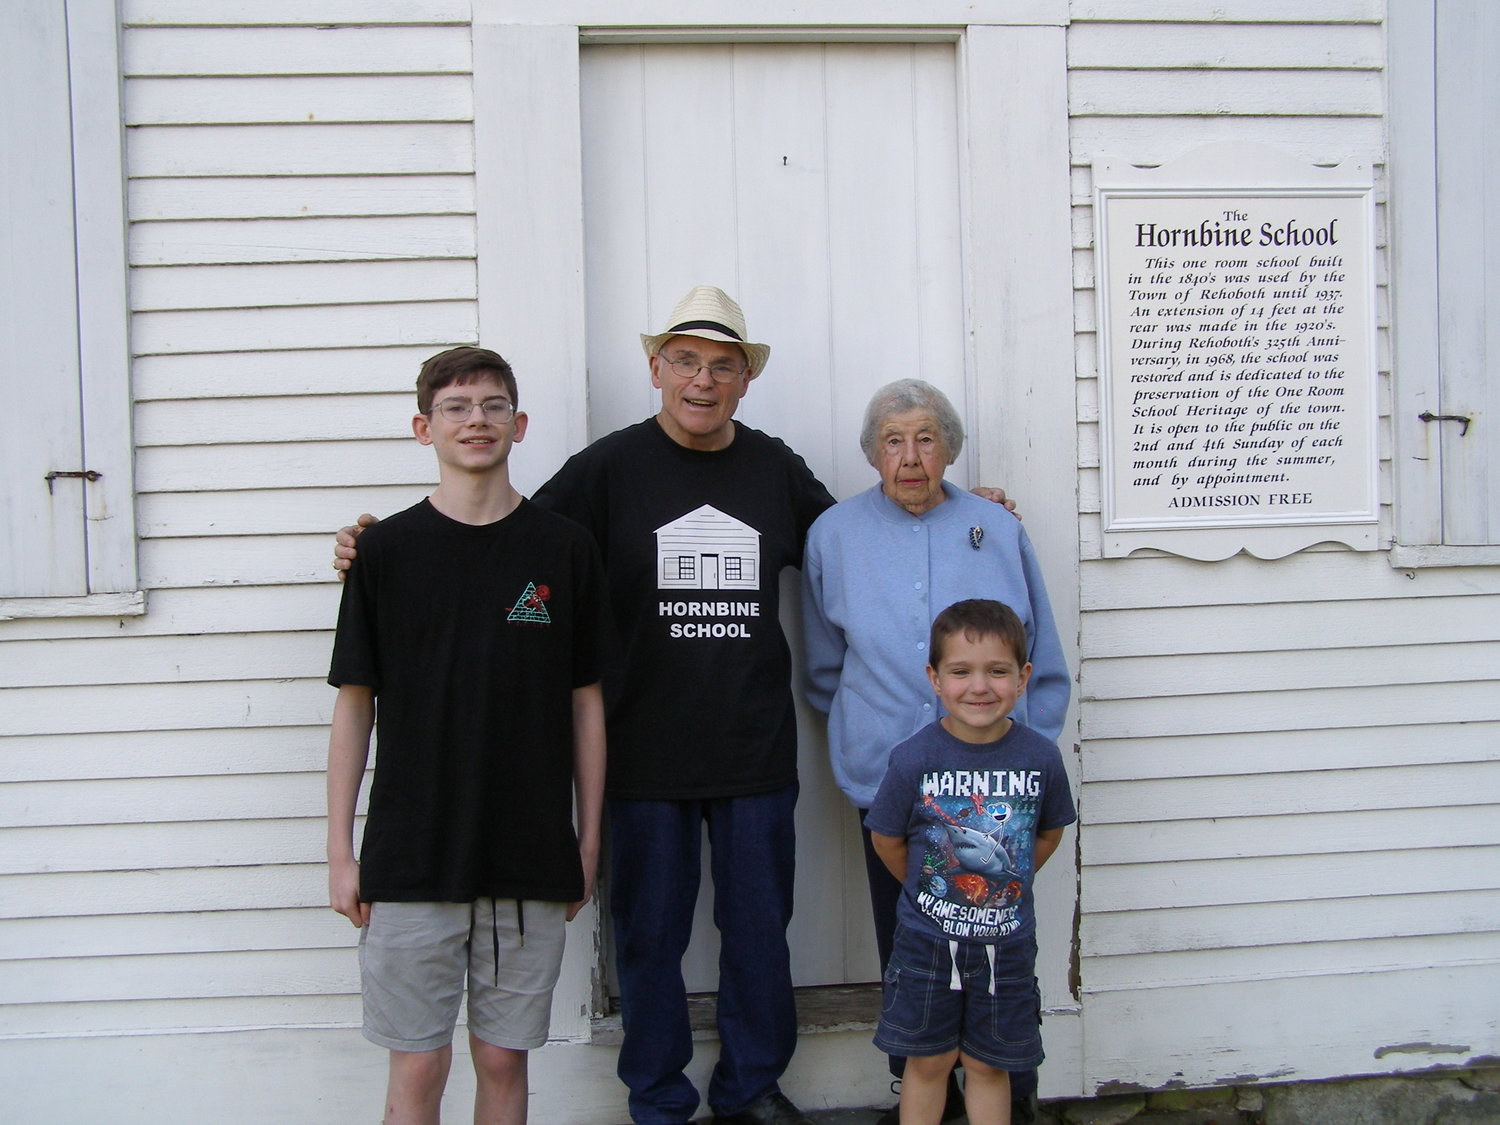 Pictured with past Hornbine School Student, Frances Magan, are Dave Downs who has visited the school for most of the past 47 years; Joshua Faulder, who has visited the school each June 11th for fifteen years; and Caden Lazaro, who has visited the school on June 11th for five years.